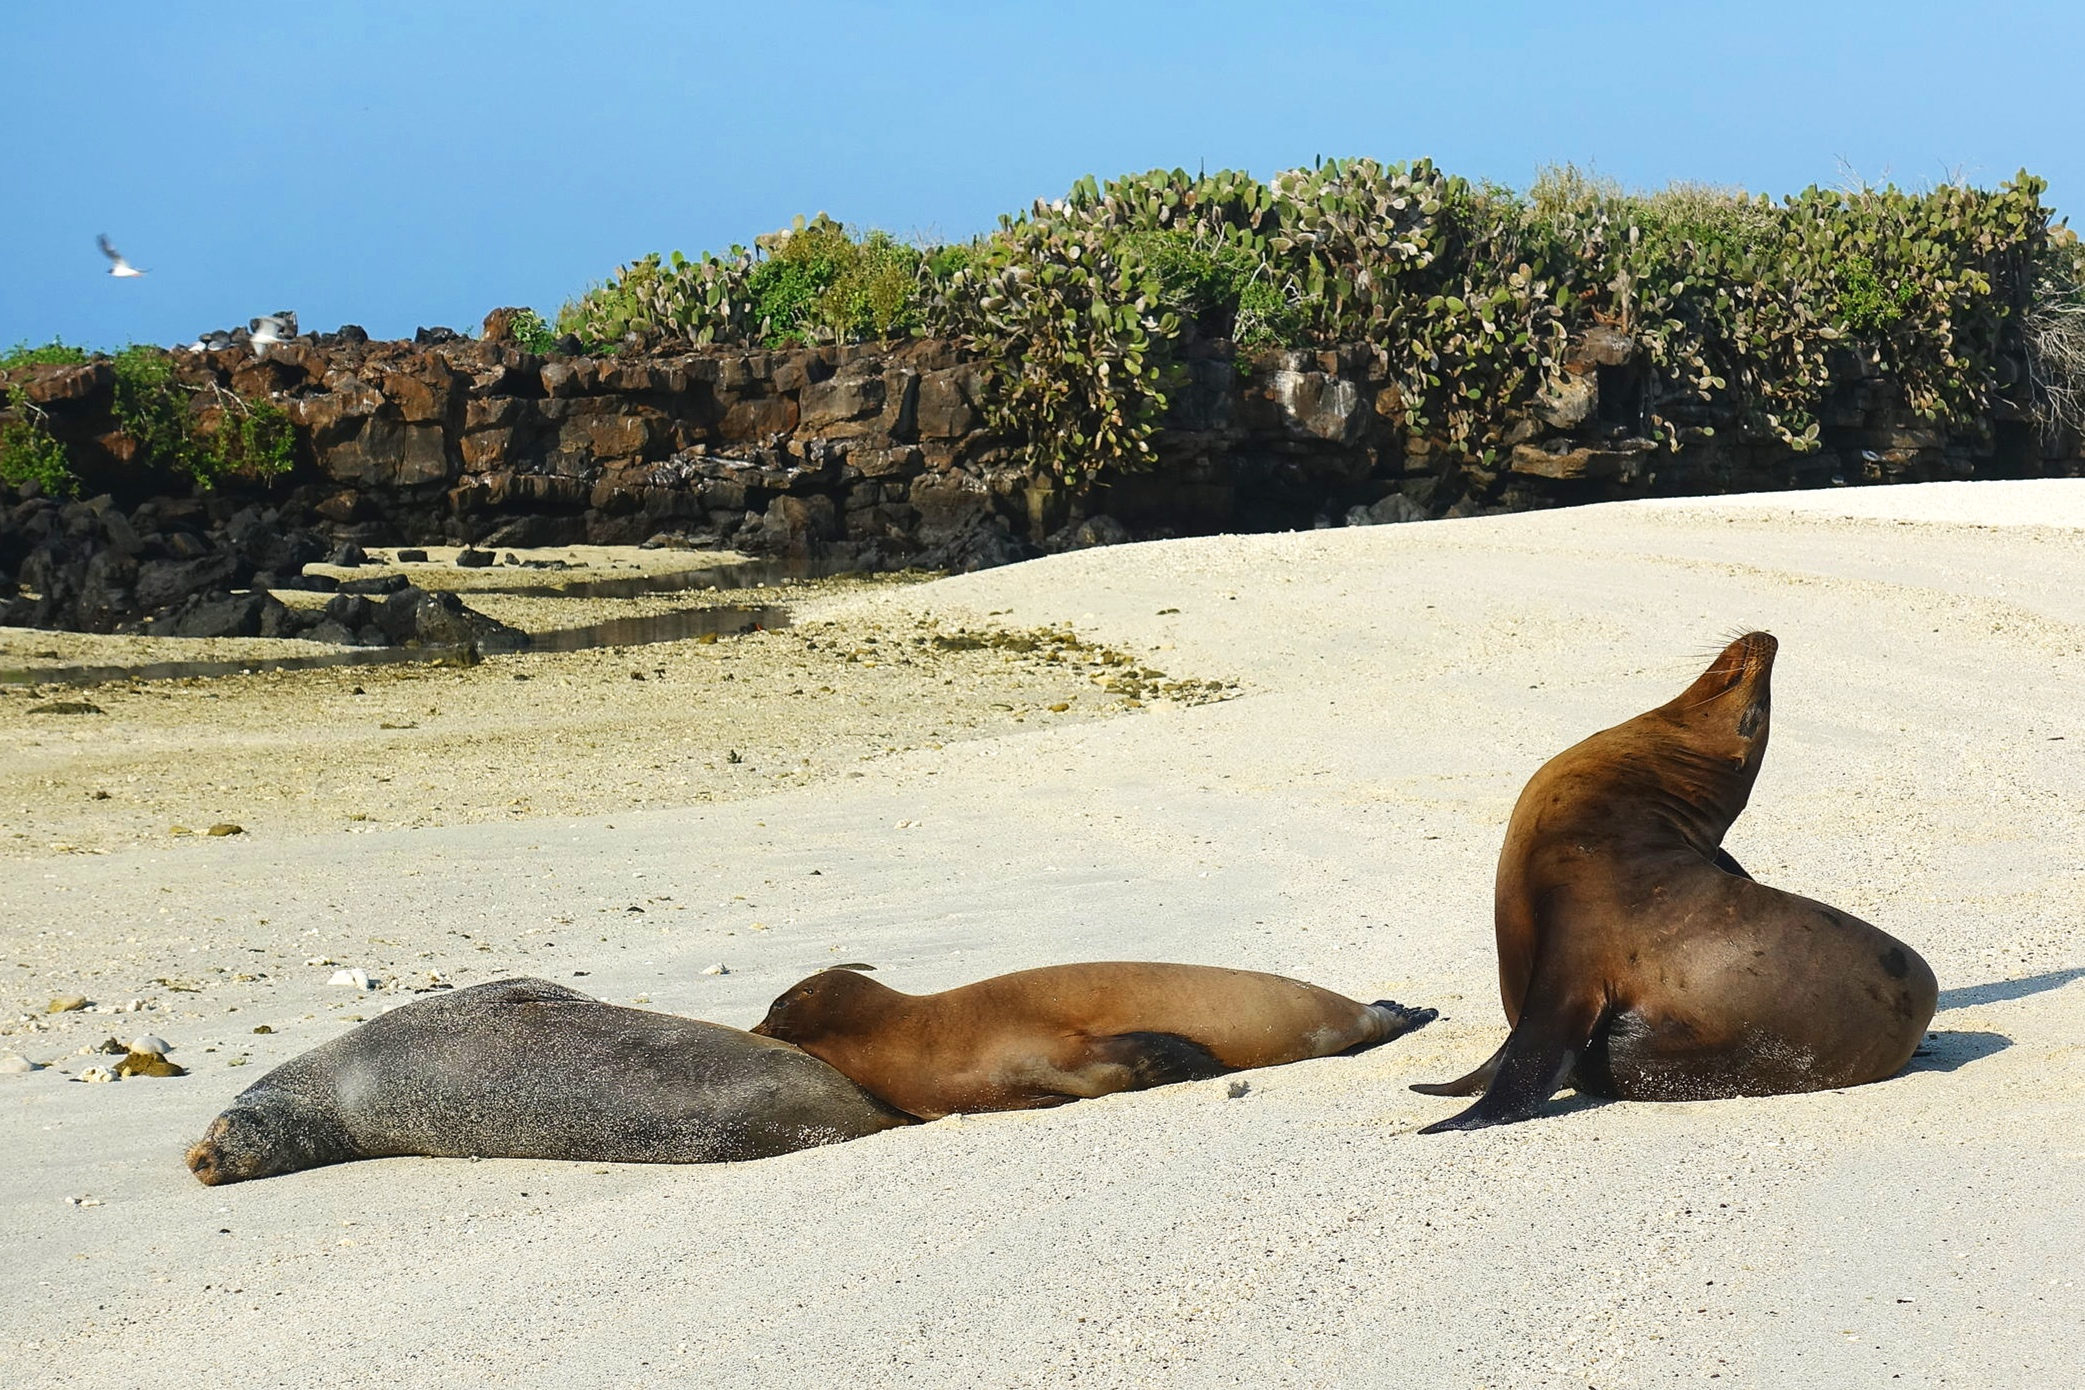 The first of many sea-lions.